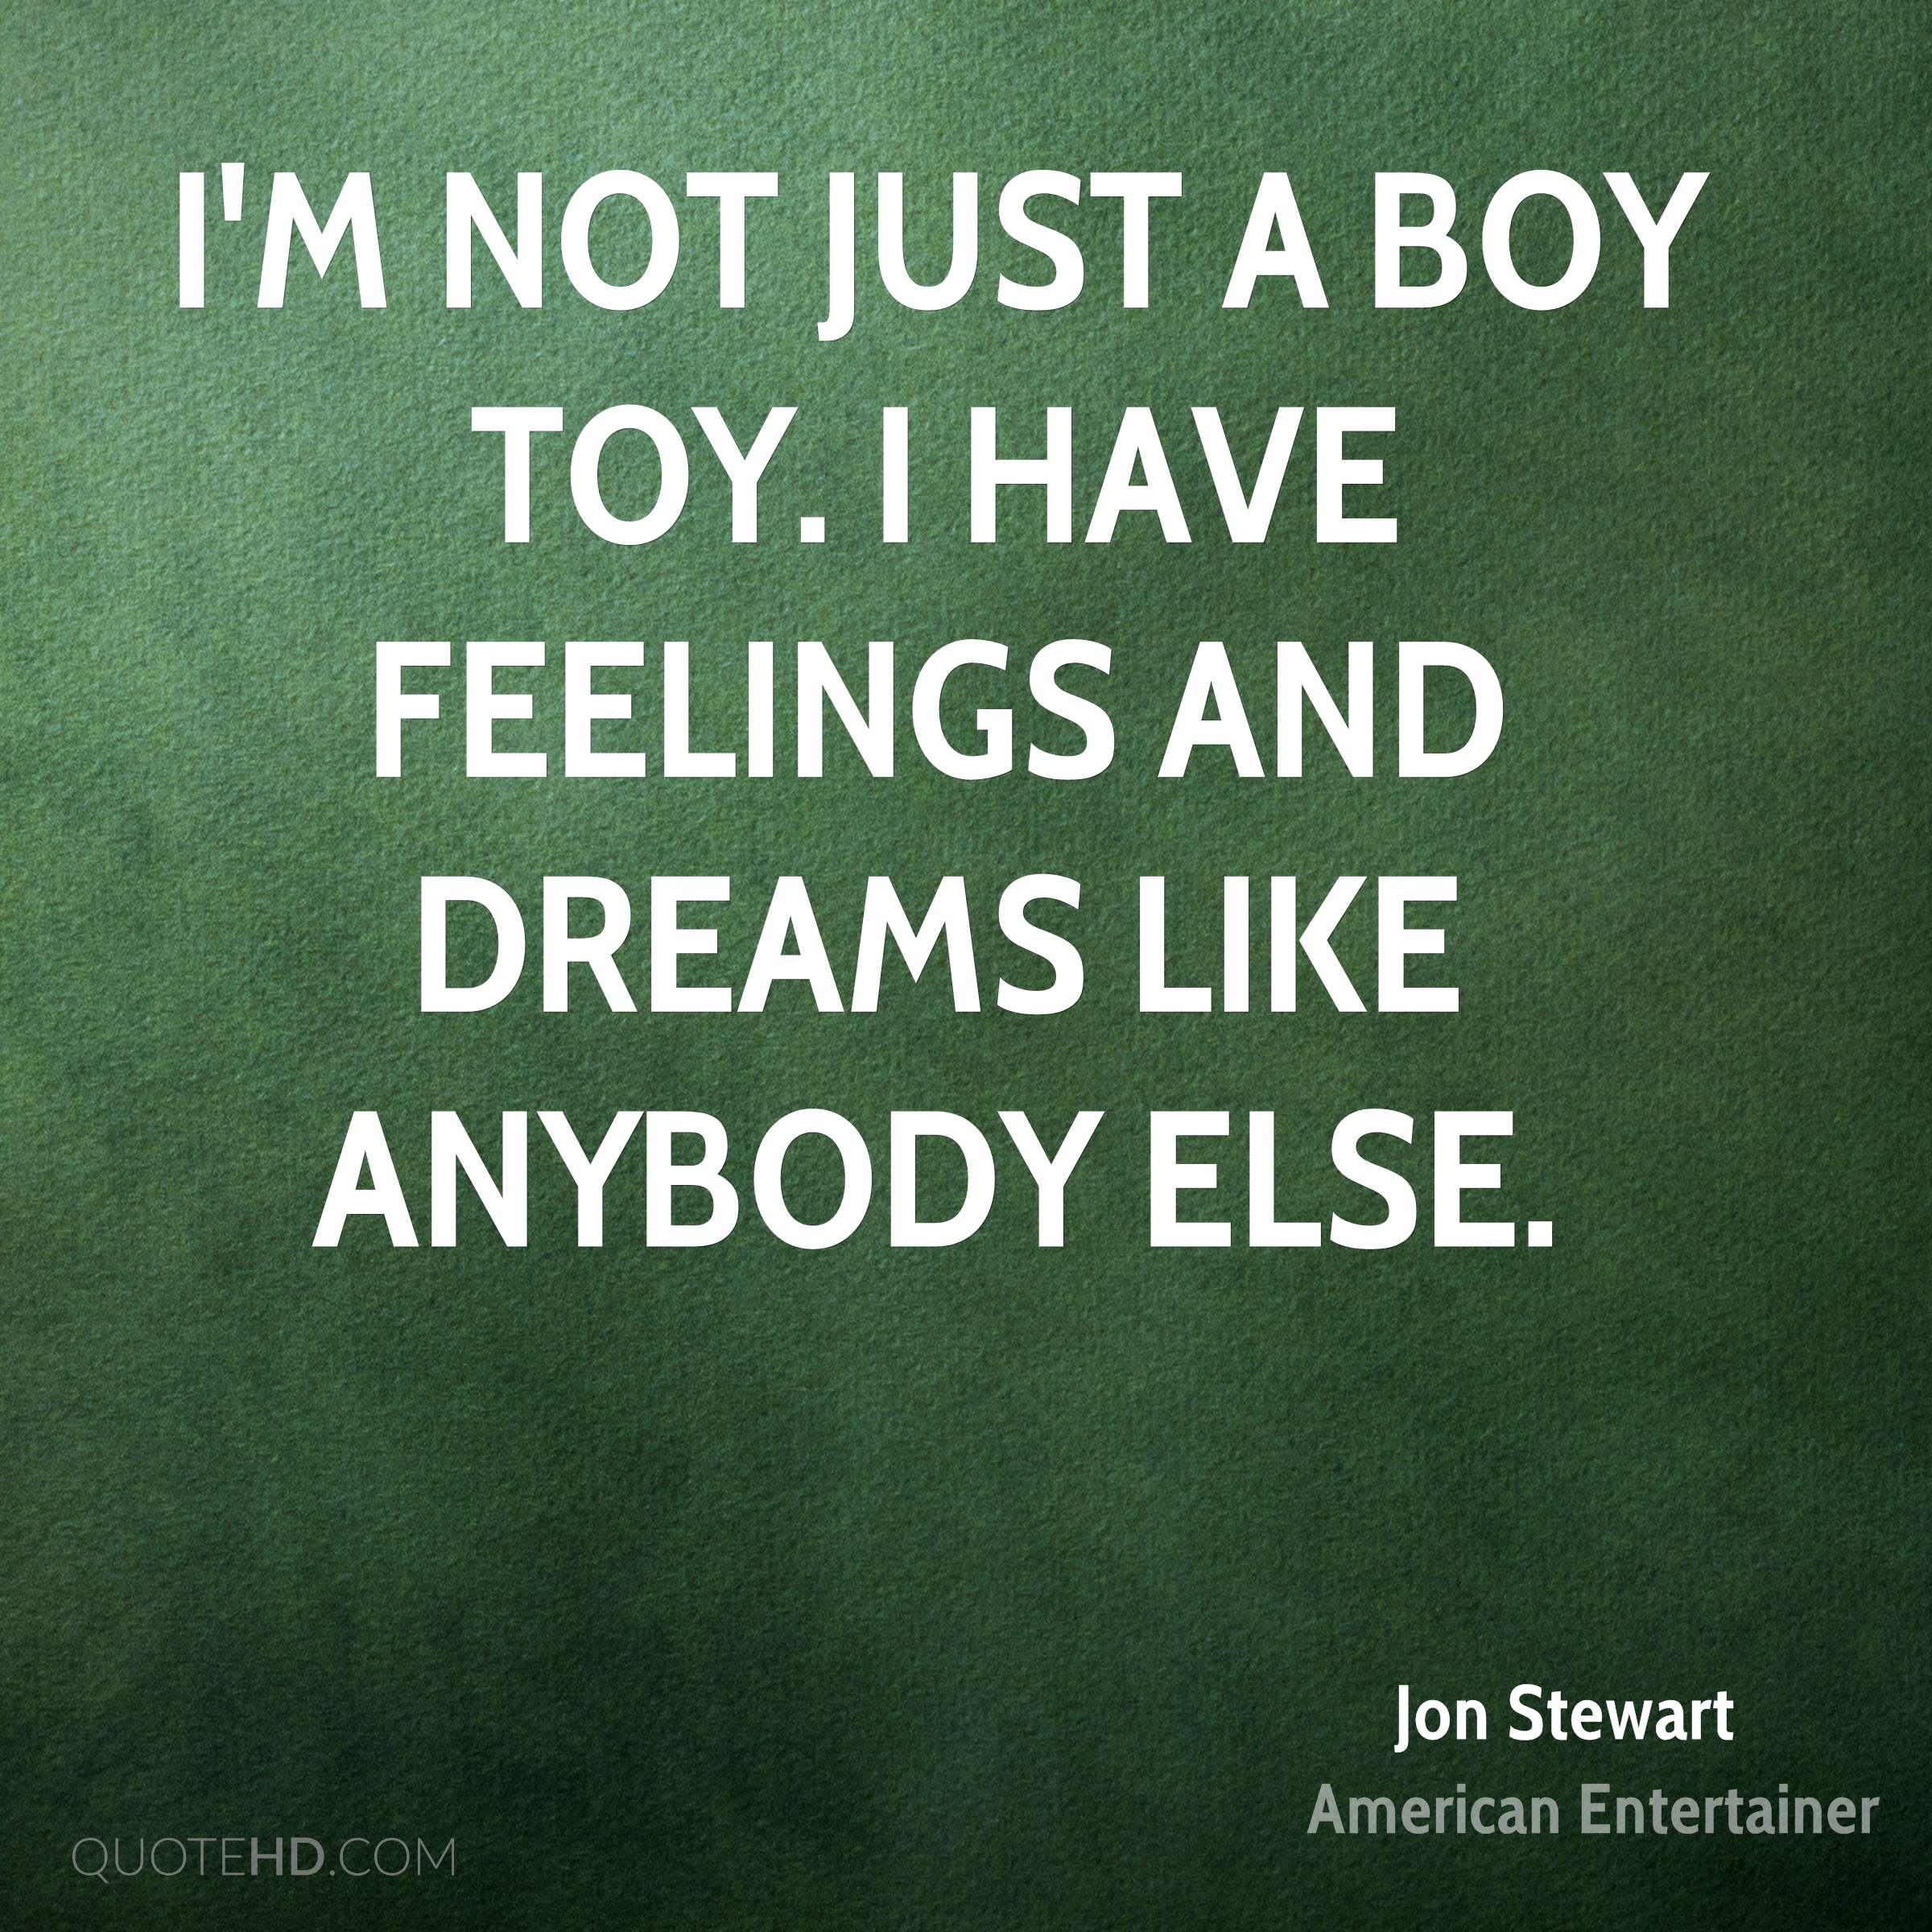 Jon Stewart Dreams Quotes Quotehd